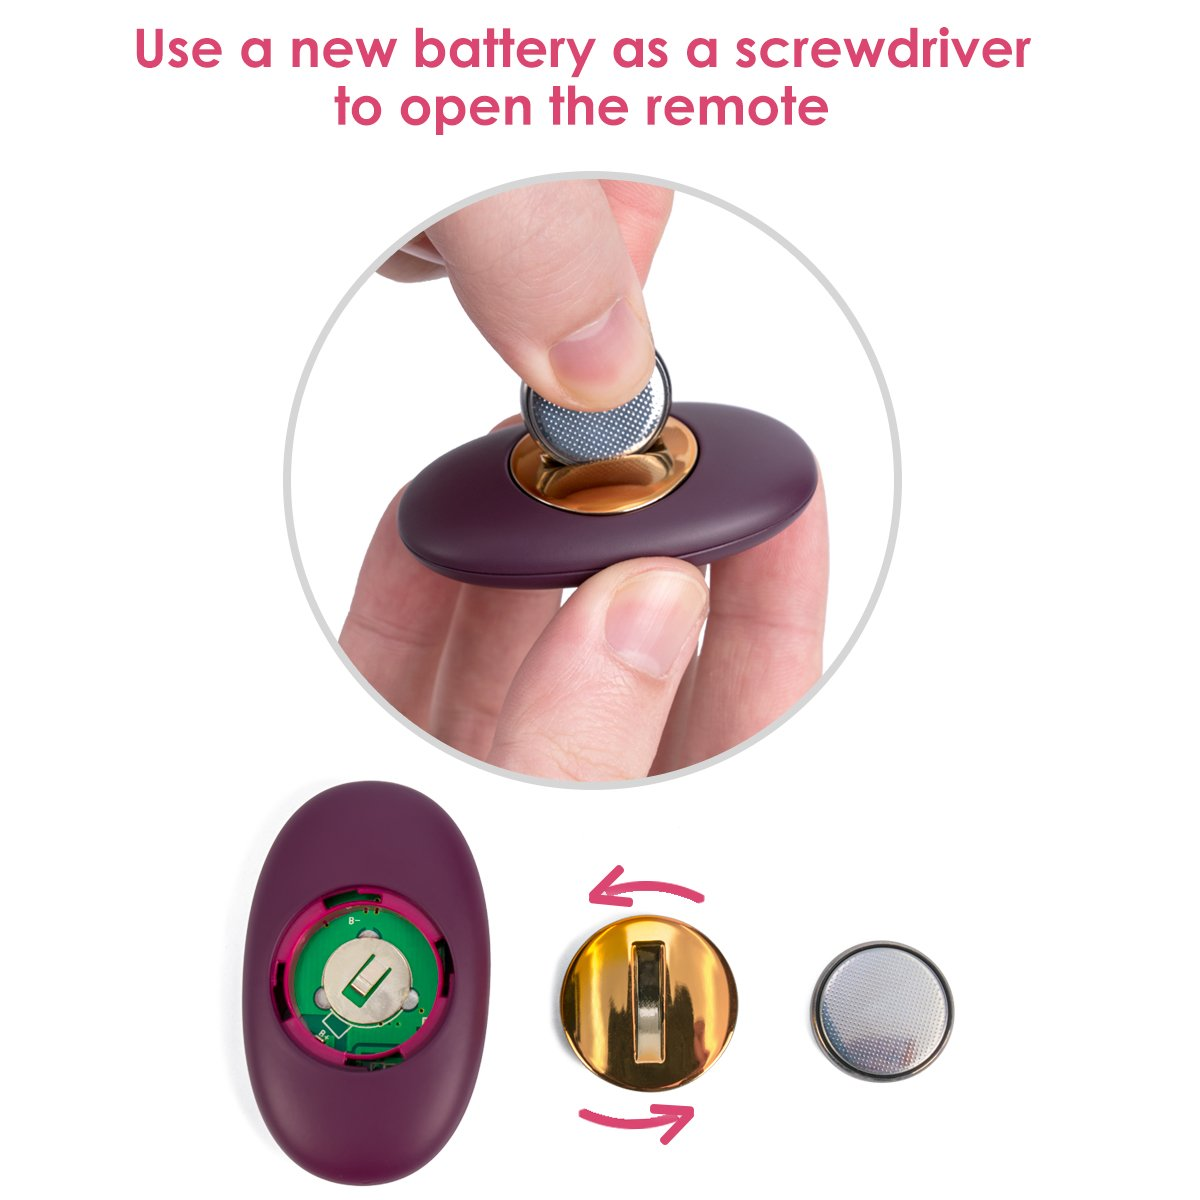 SVAKOM 5 Speeds Vibrator Egg, Wireless Vibration Massager USB Charging Waterproof Vibrators, Violet,Discreet Package